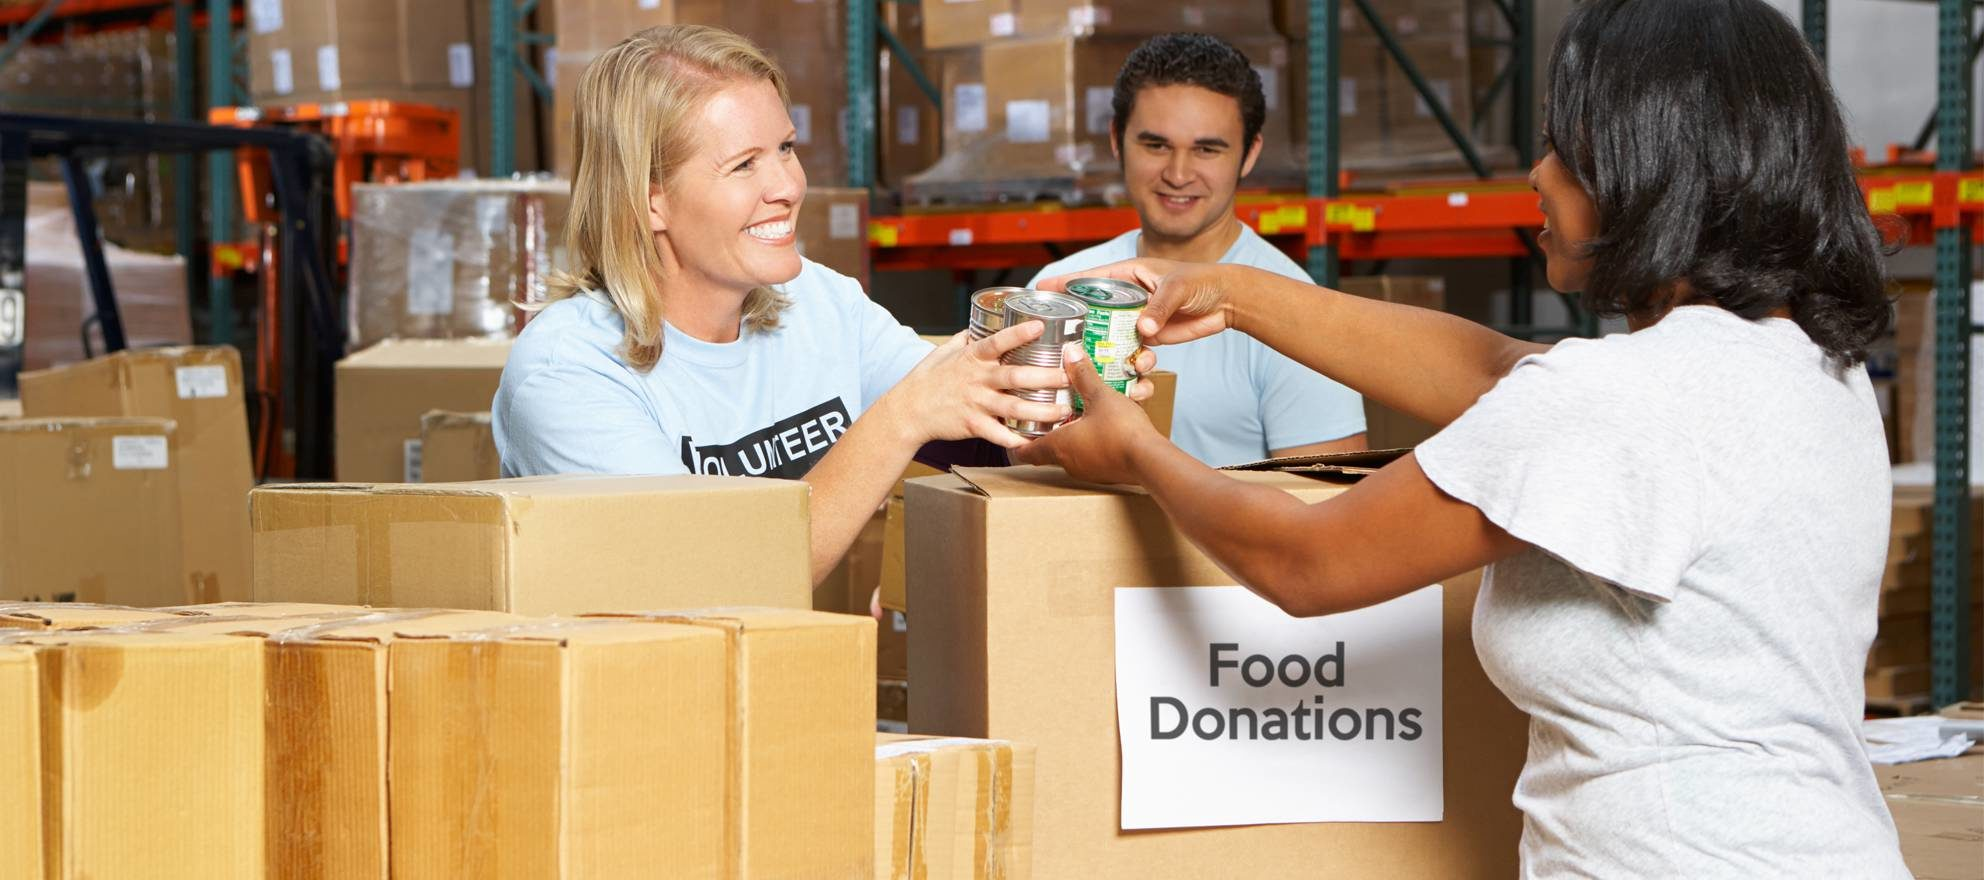 4 brokerages that are embracing social responsibility